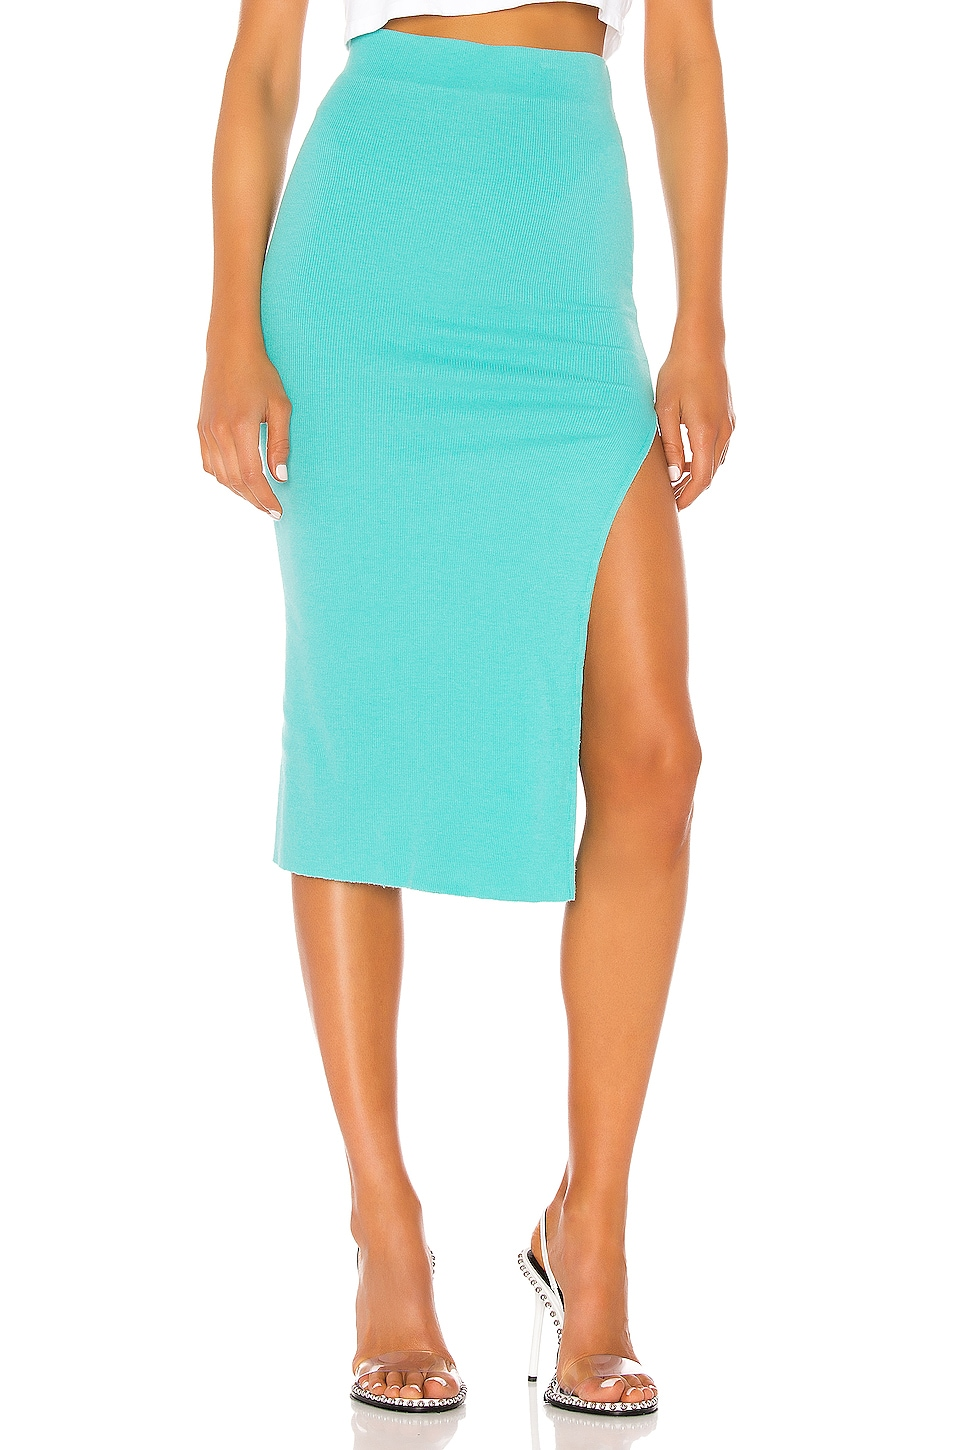 COTTON CITIZEN Melbourne Midi Skirt With Slit in Caribbean